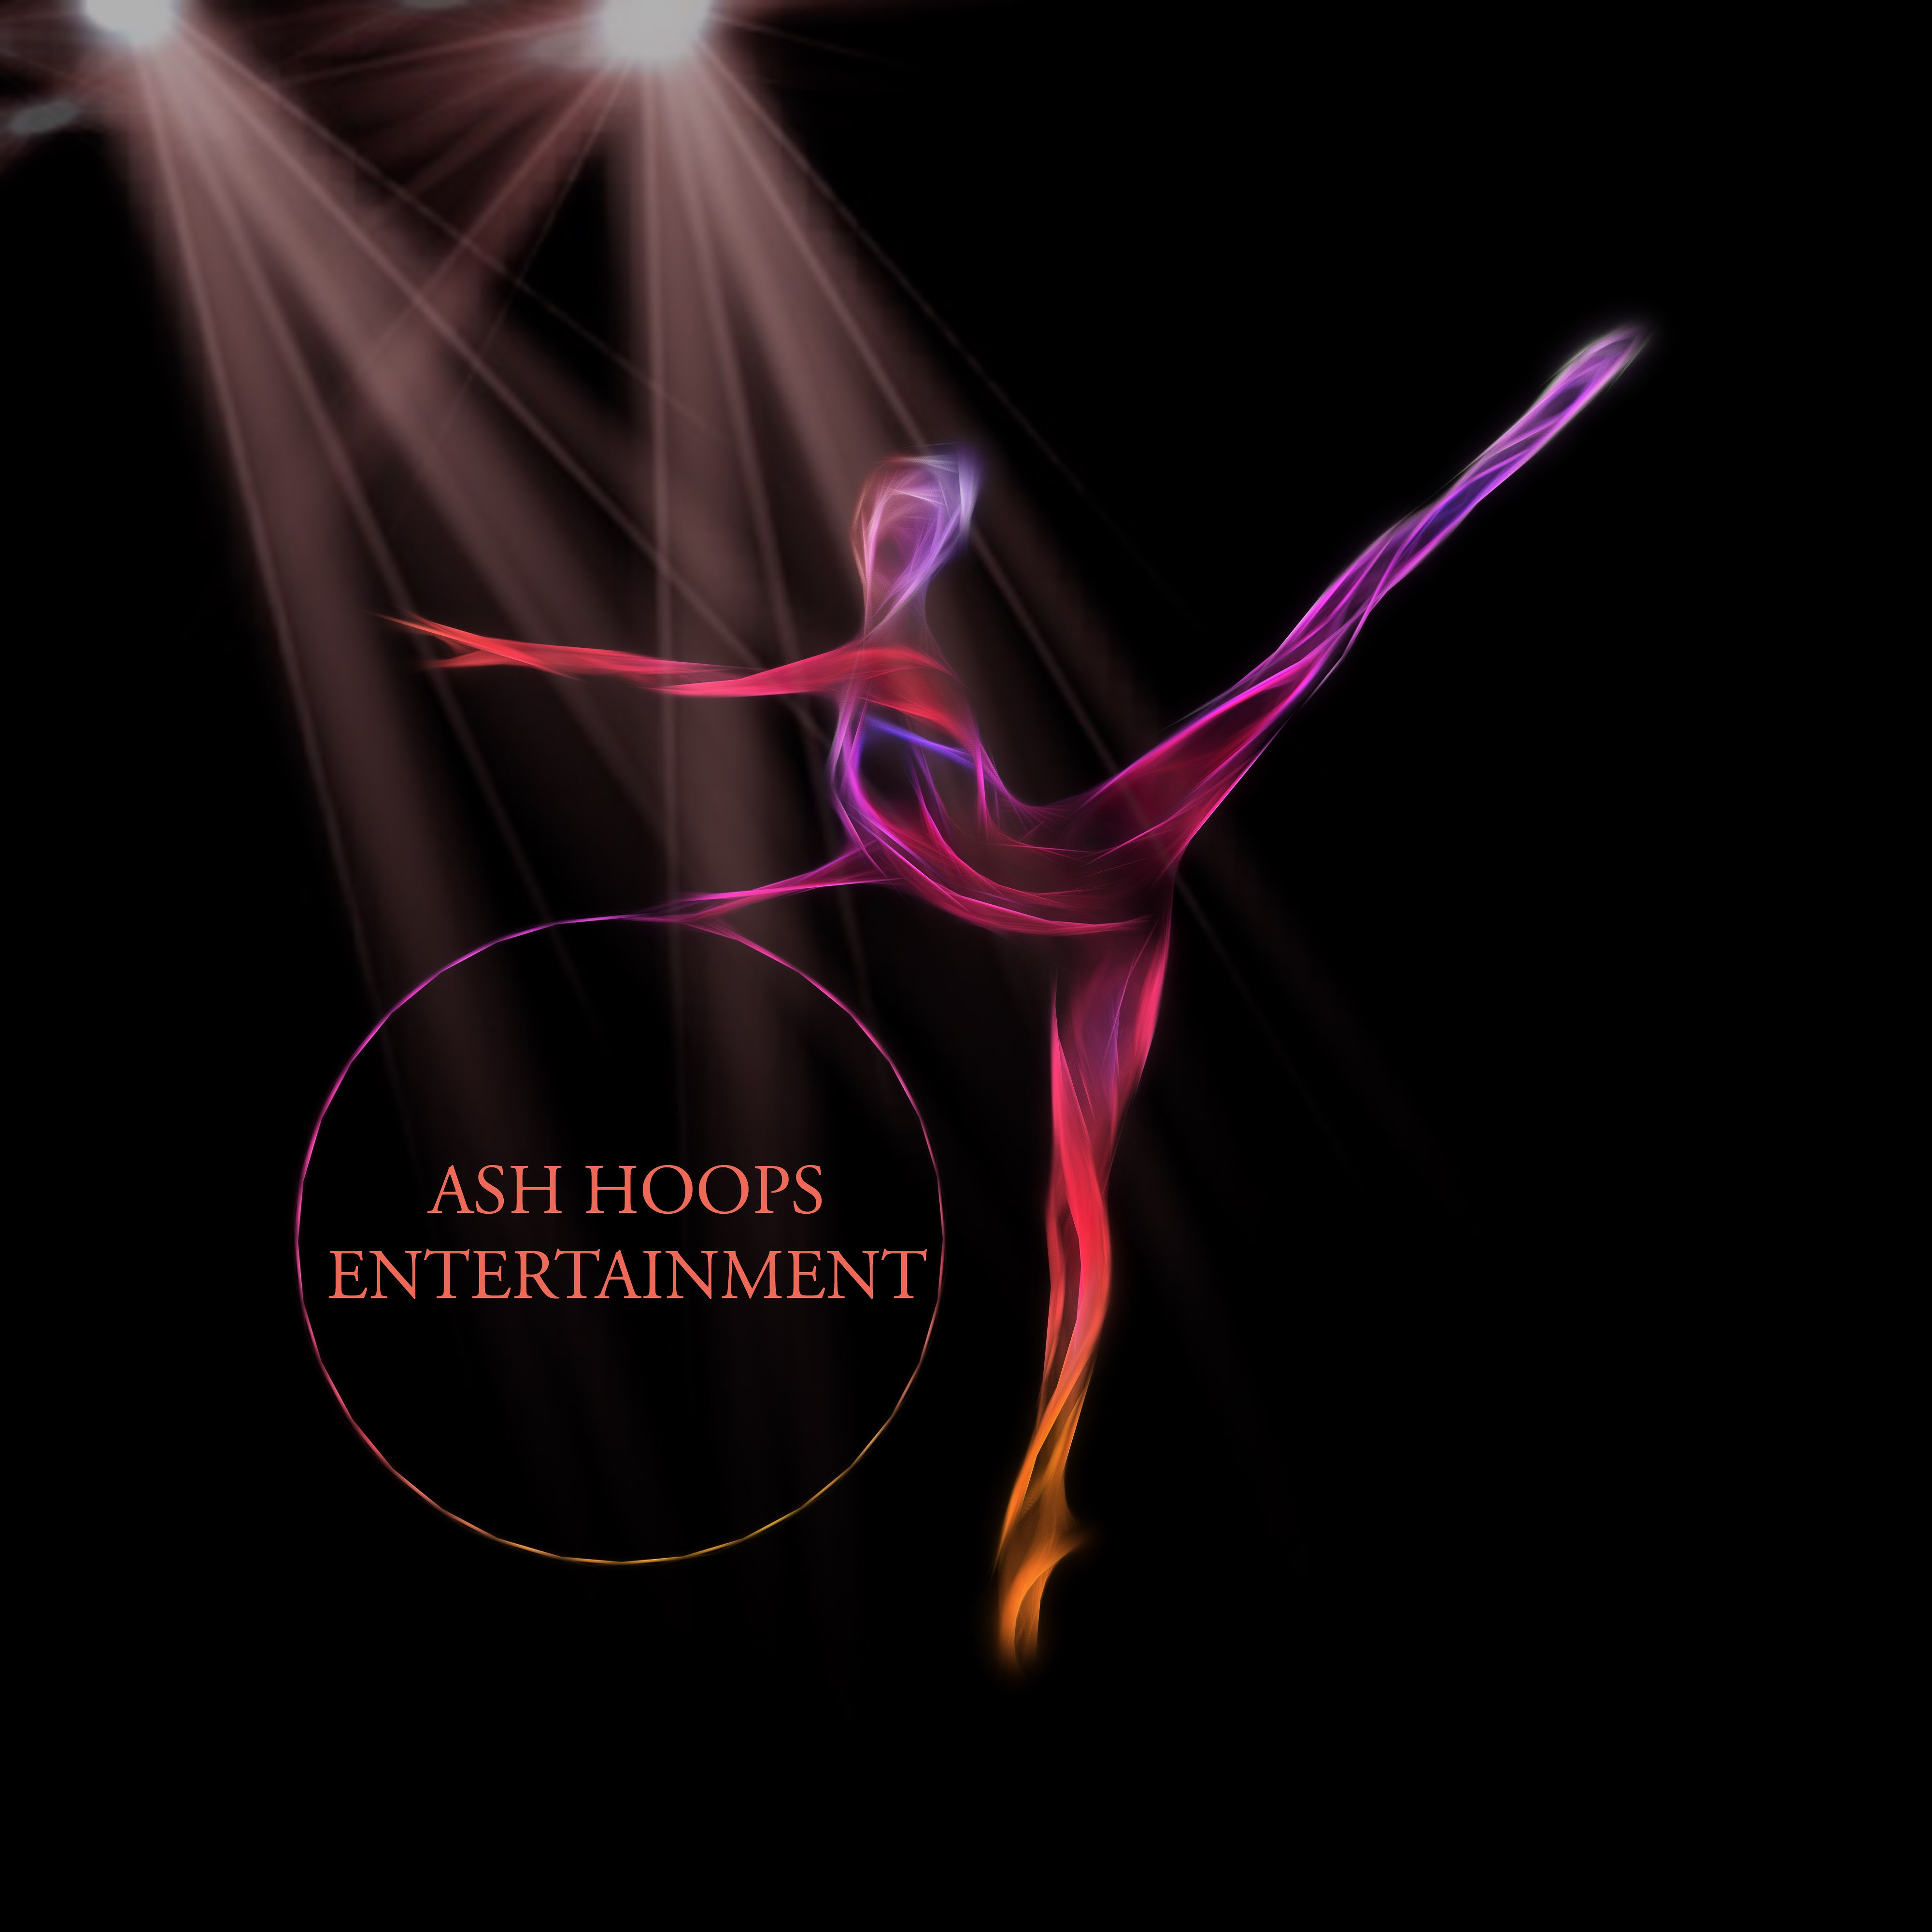 ASH HOOPS ENTERTAINMENT